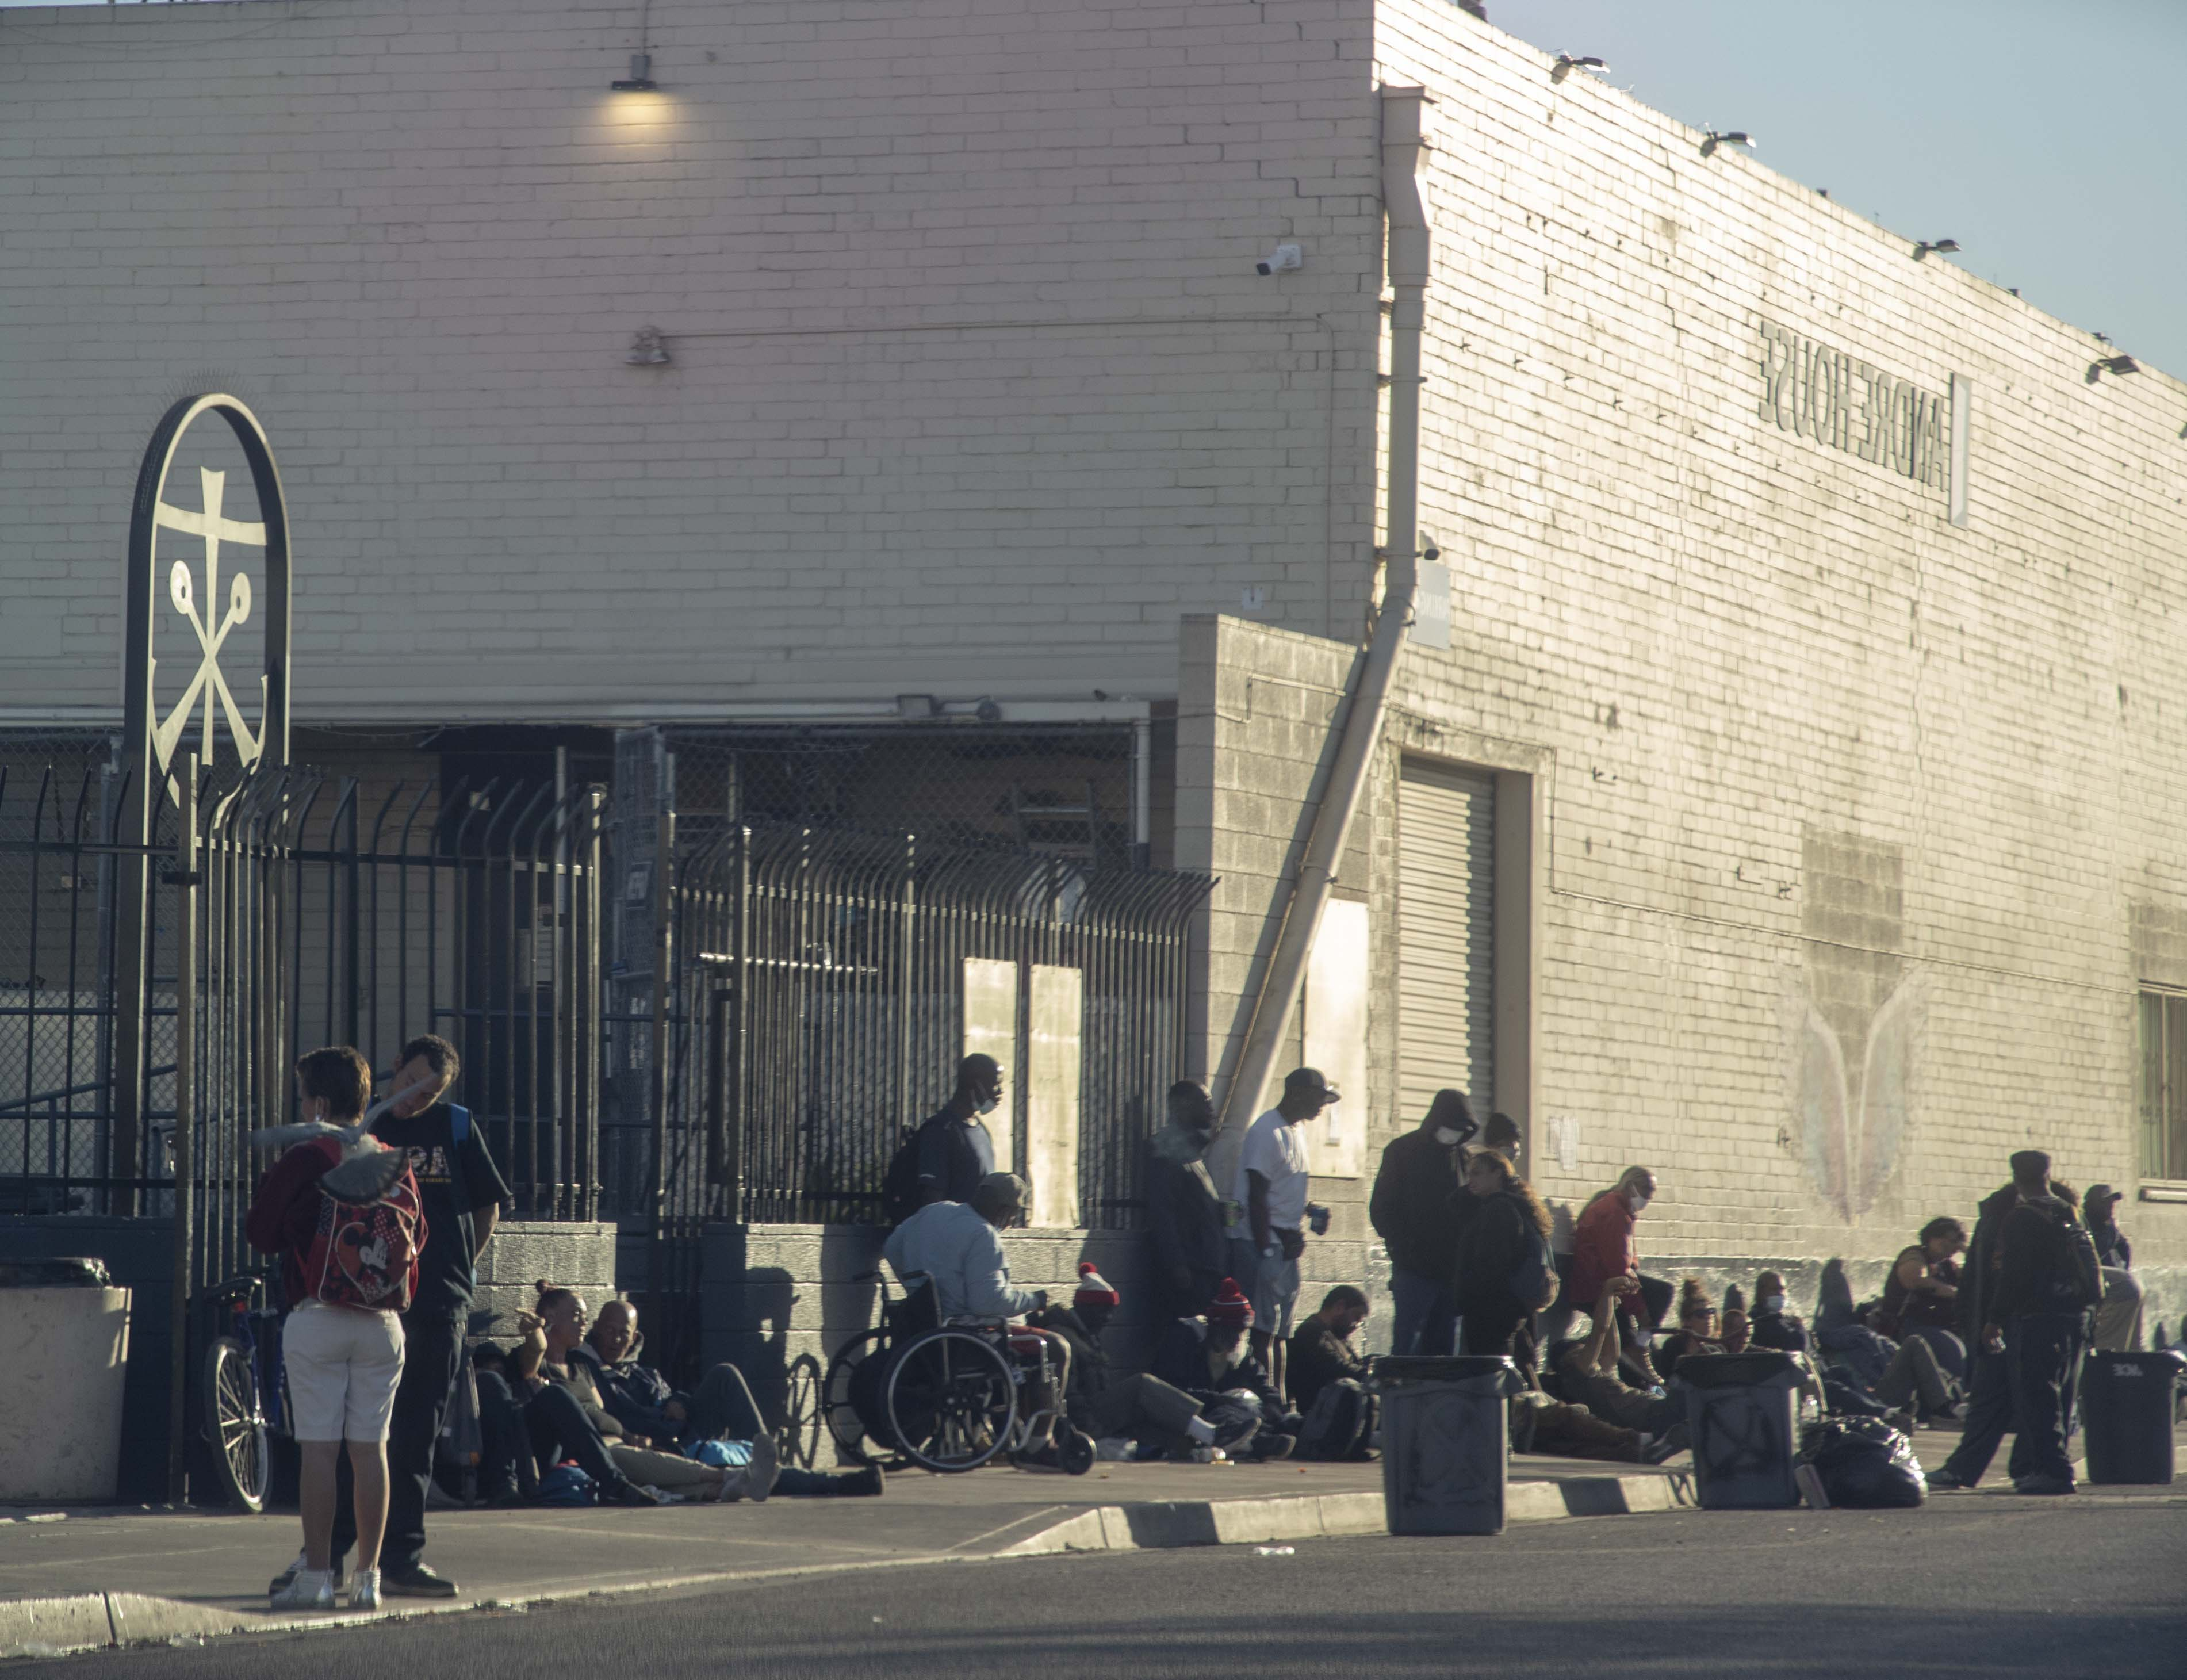 People experiencing homelessness hang out outside the Andre House on Feb. 16, 2021.